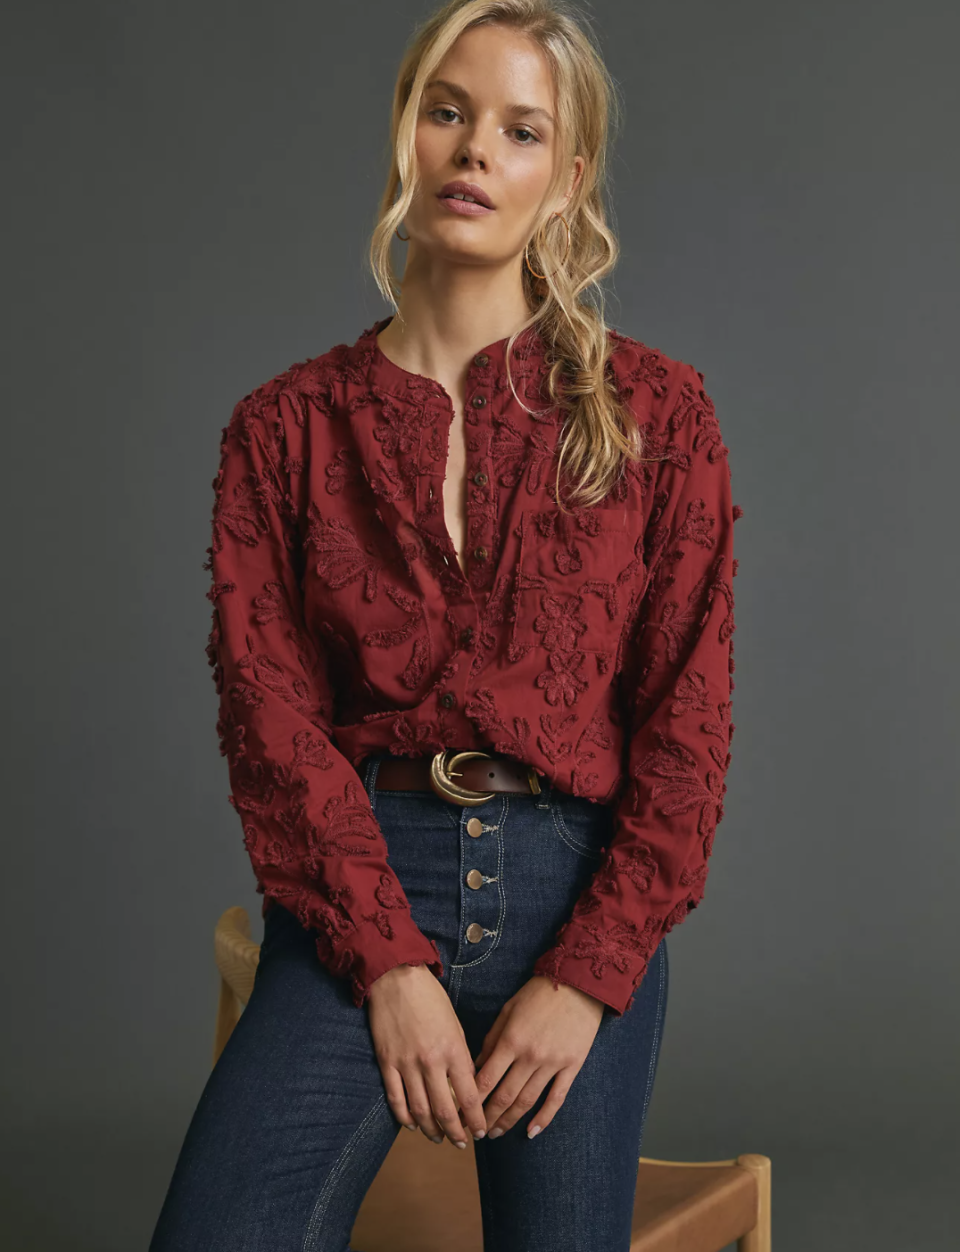 The Whitney Textured Trapeze Buttondown - Anthropologie, $60 (originally $118)